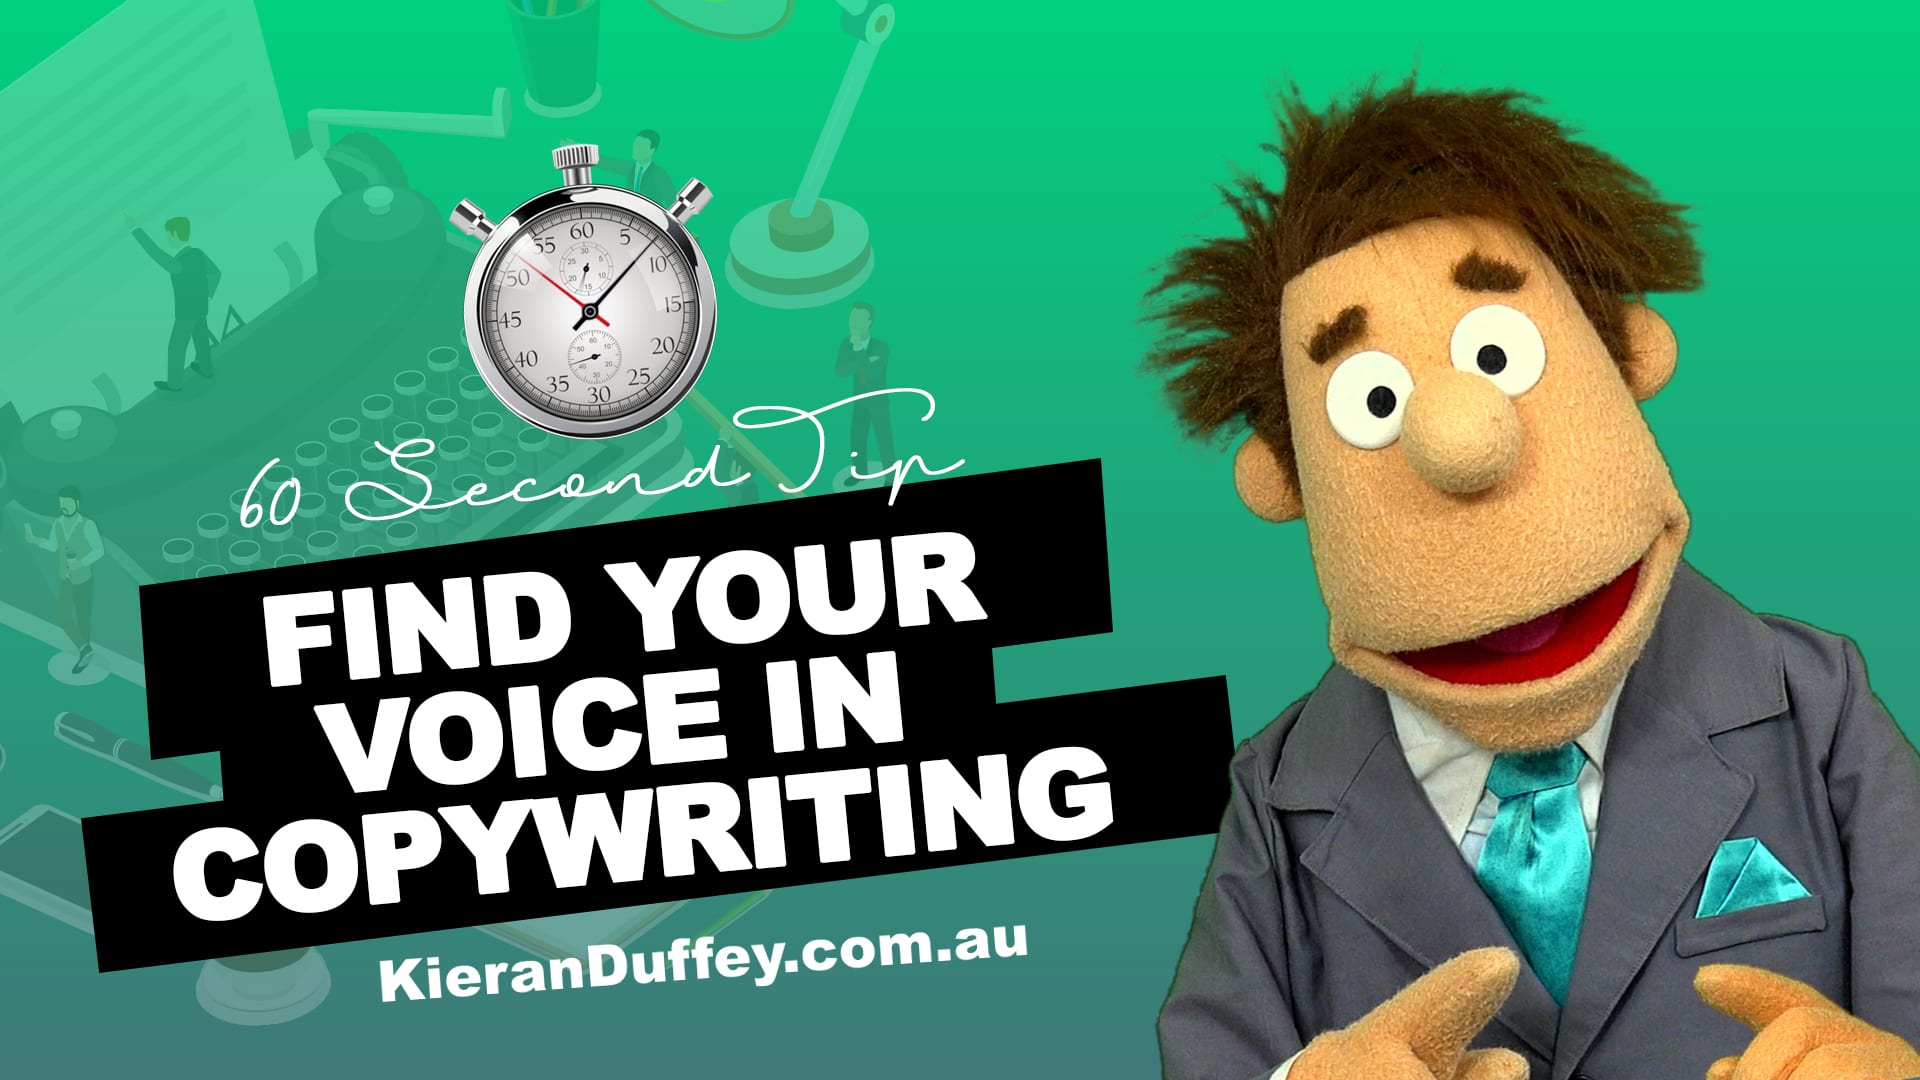 Video explaining finding your voice in copywriting